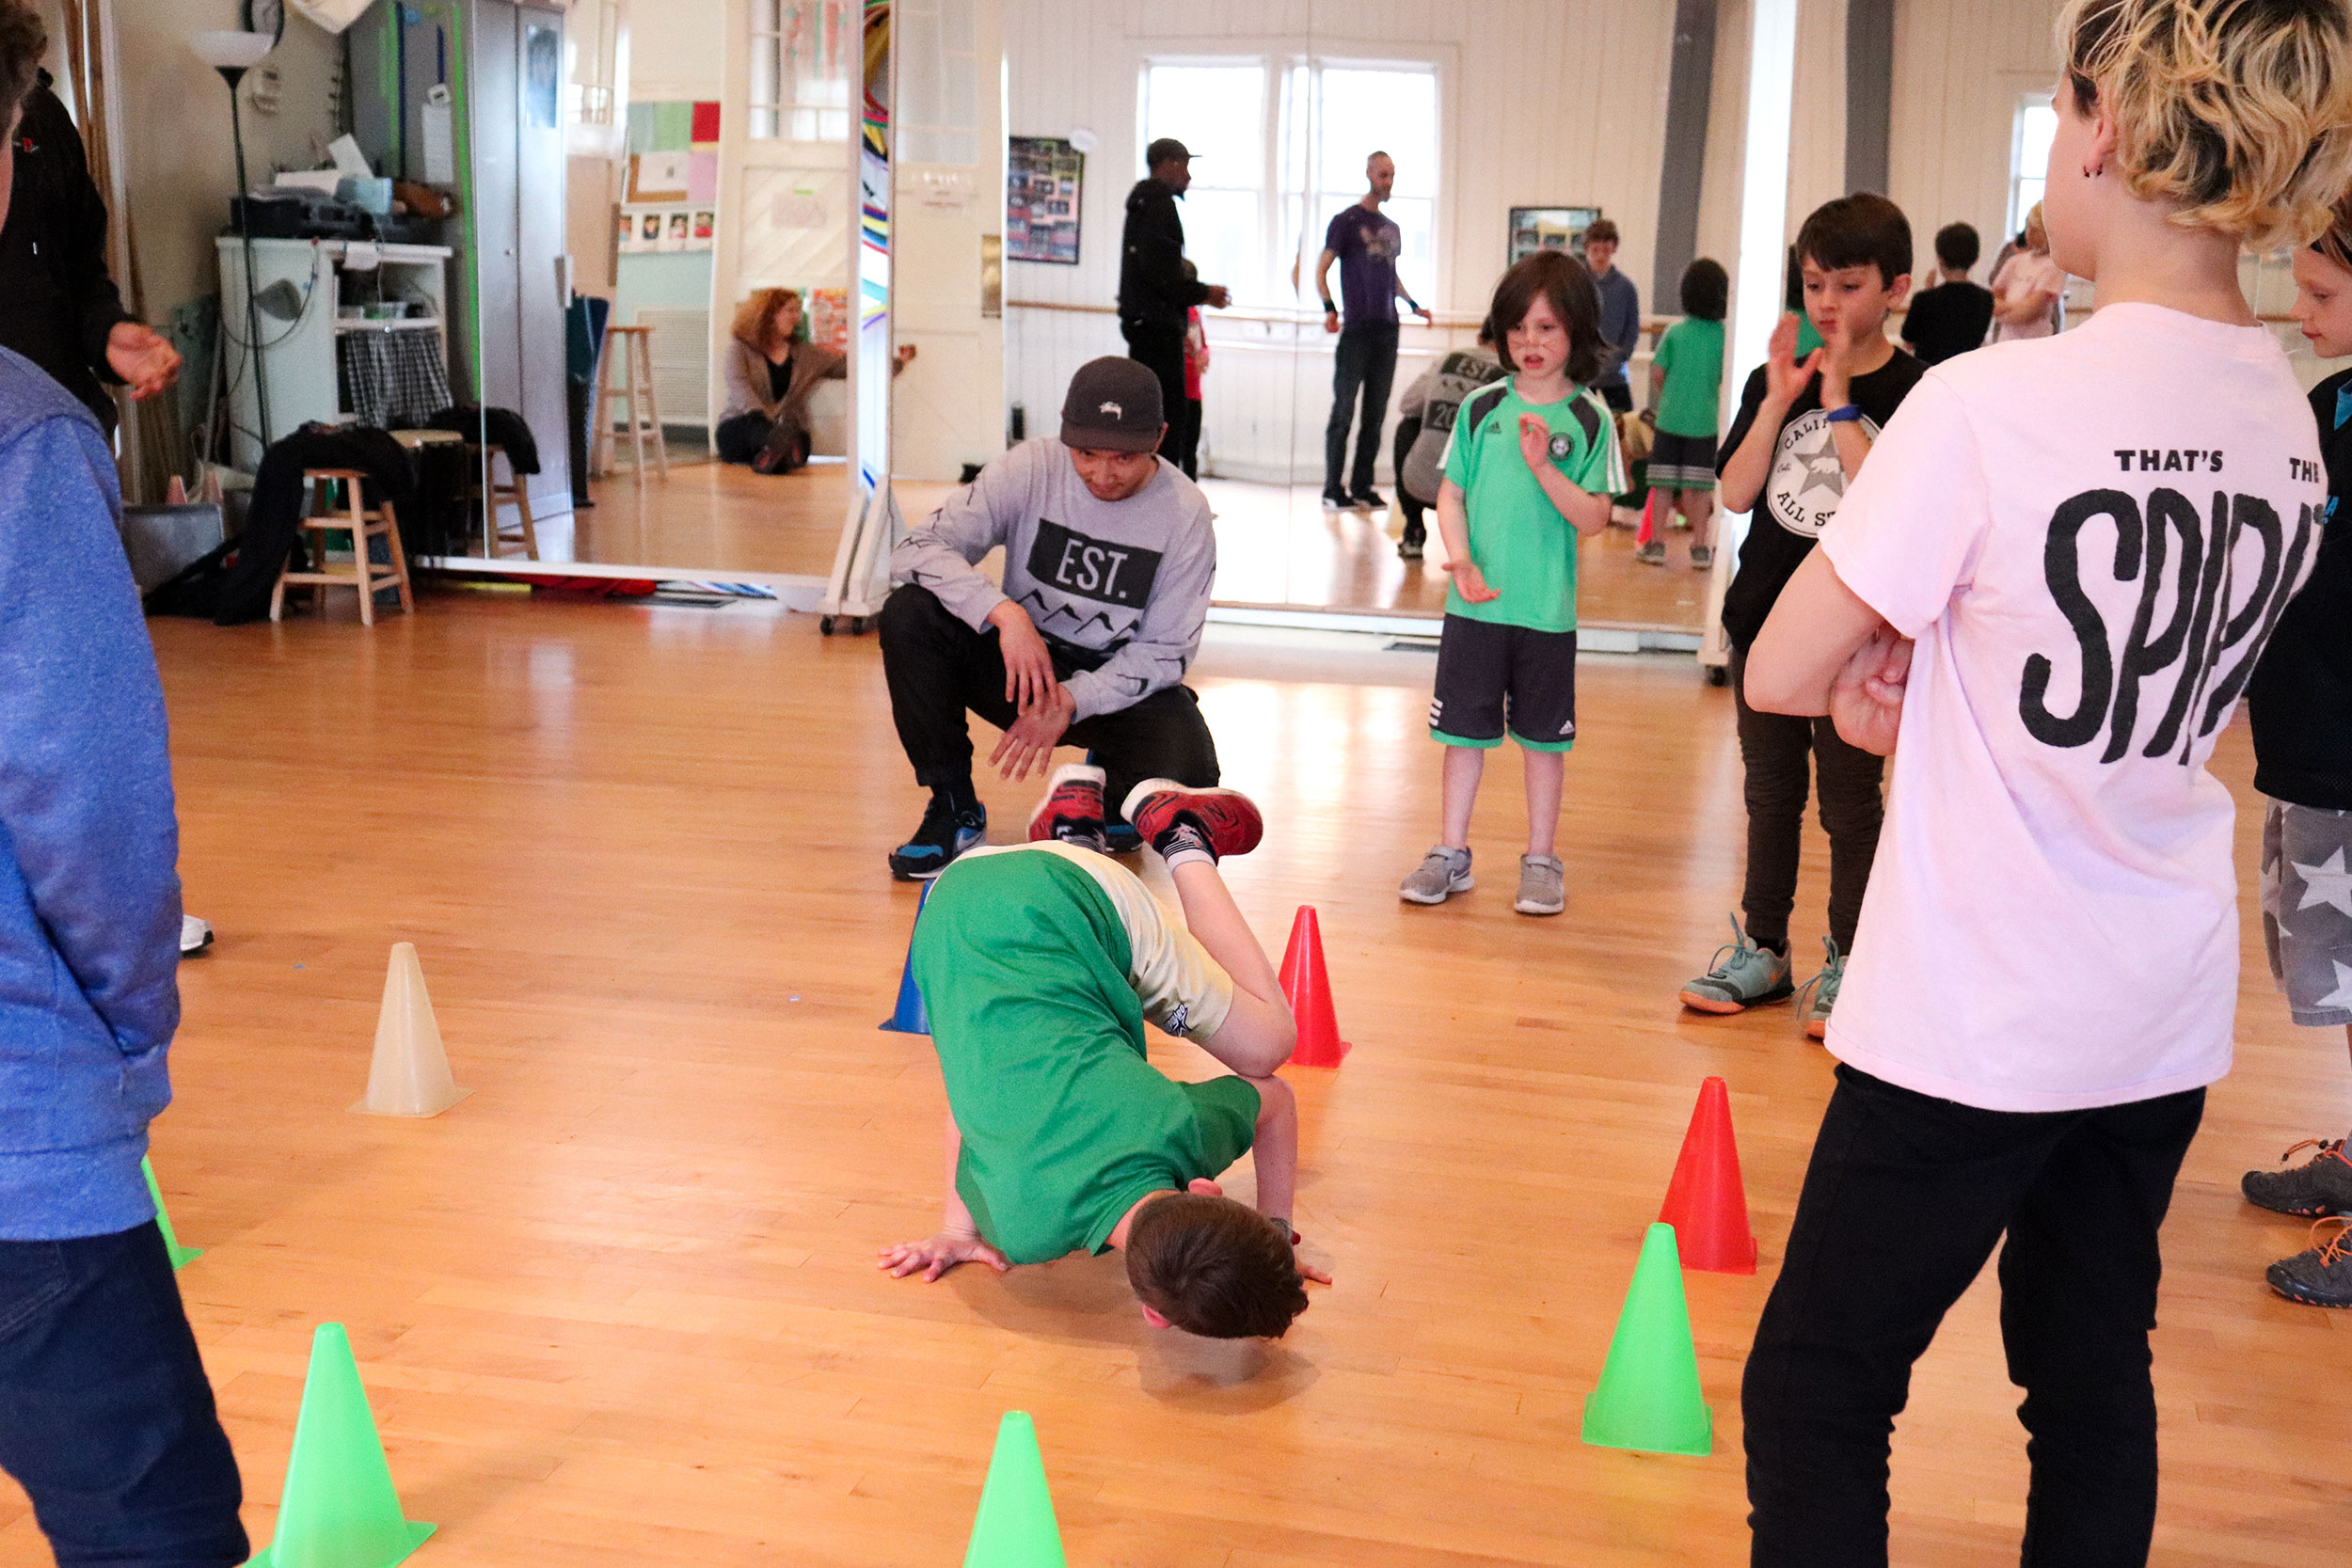 A child shows off his cool breakdancing move for the class.